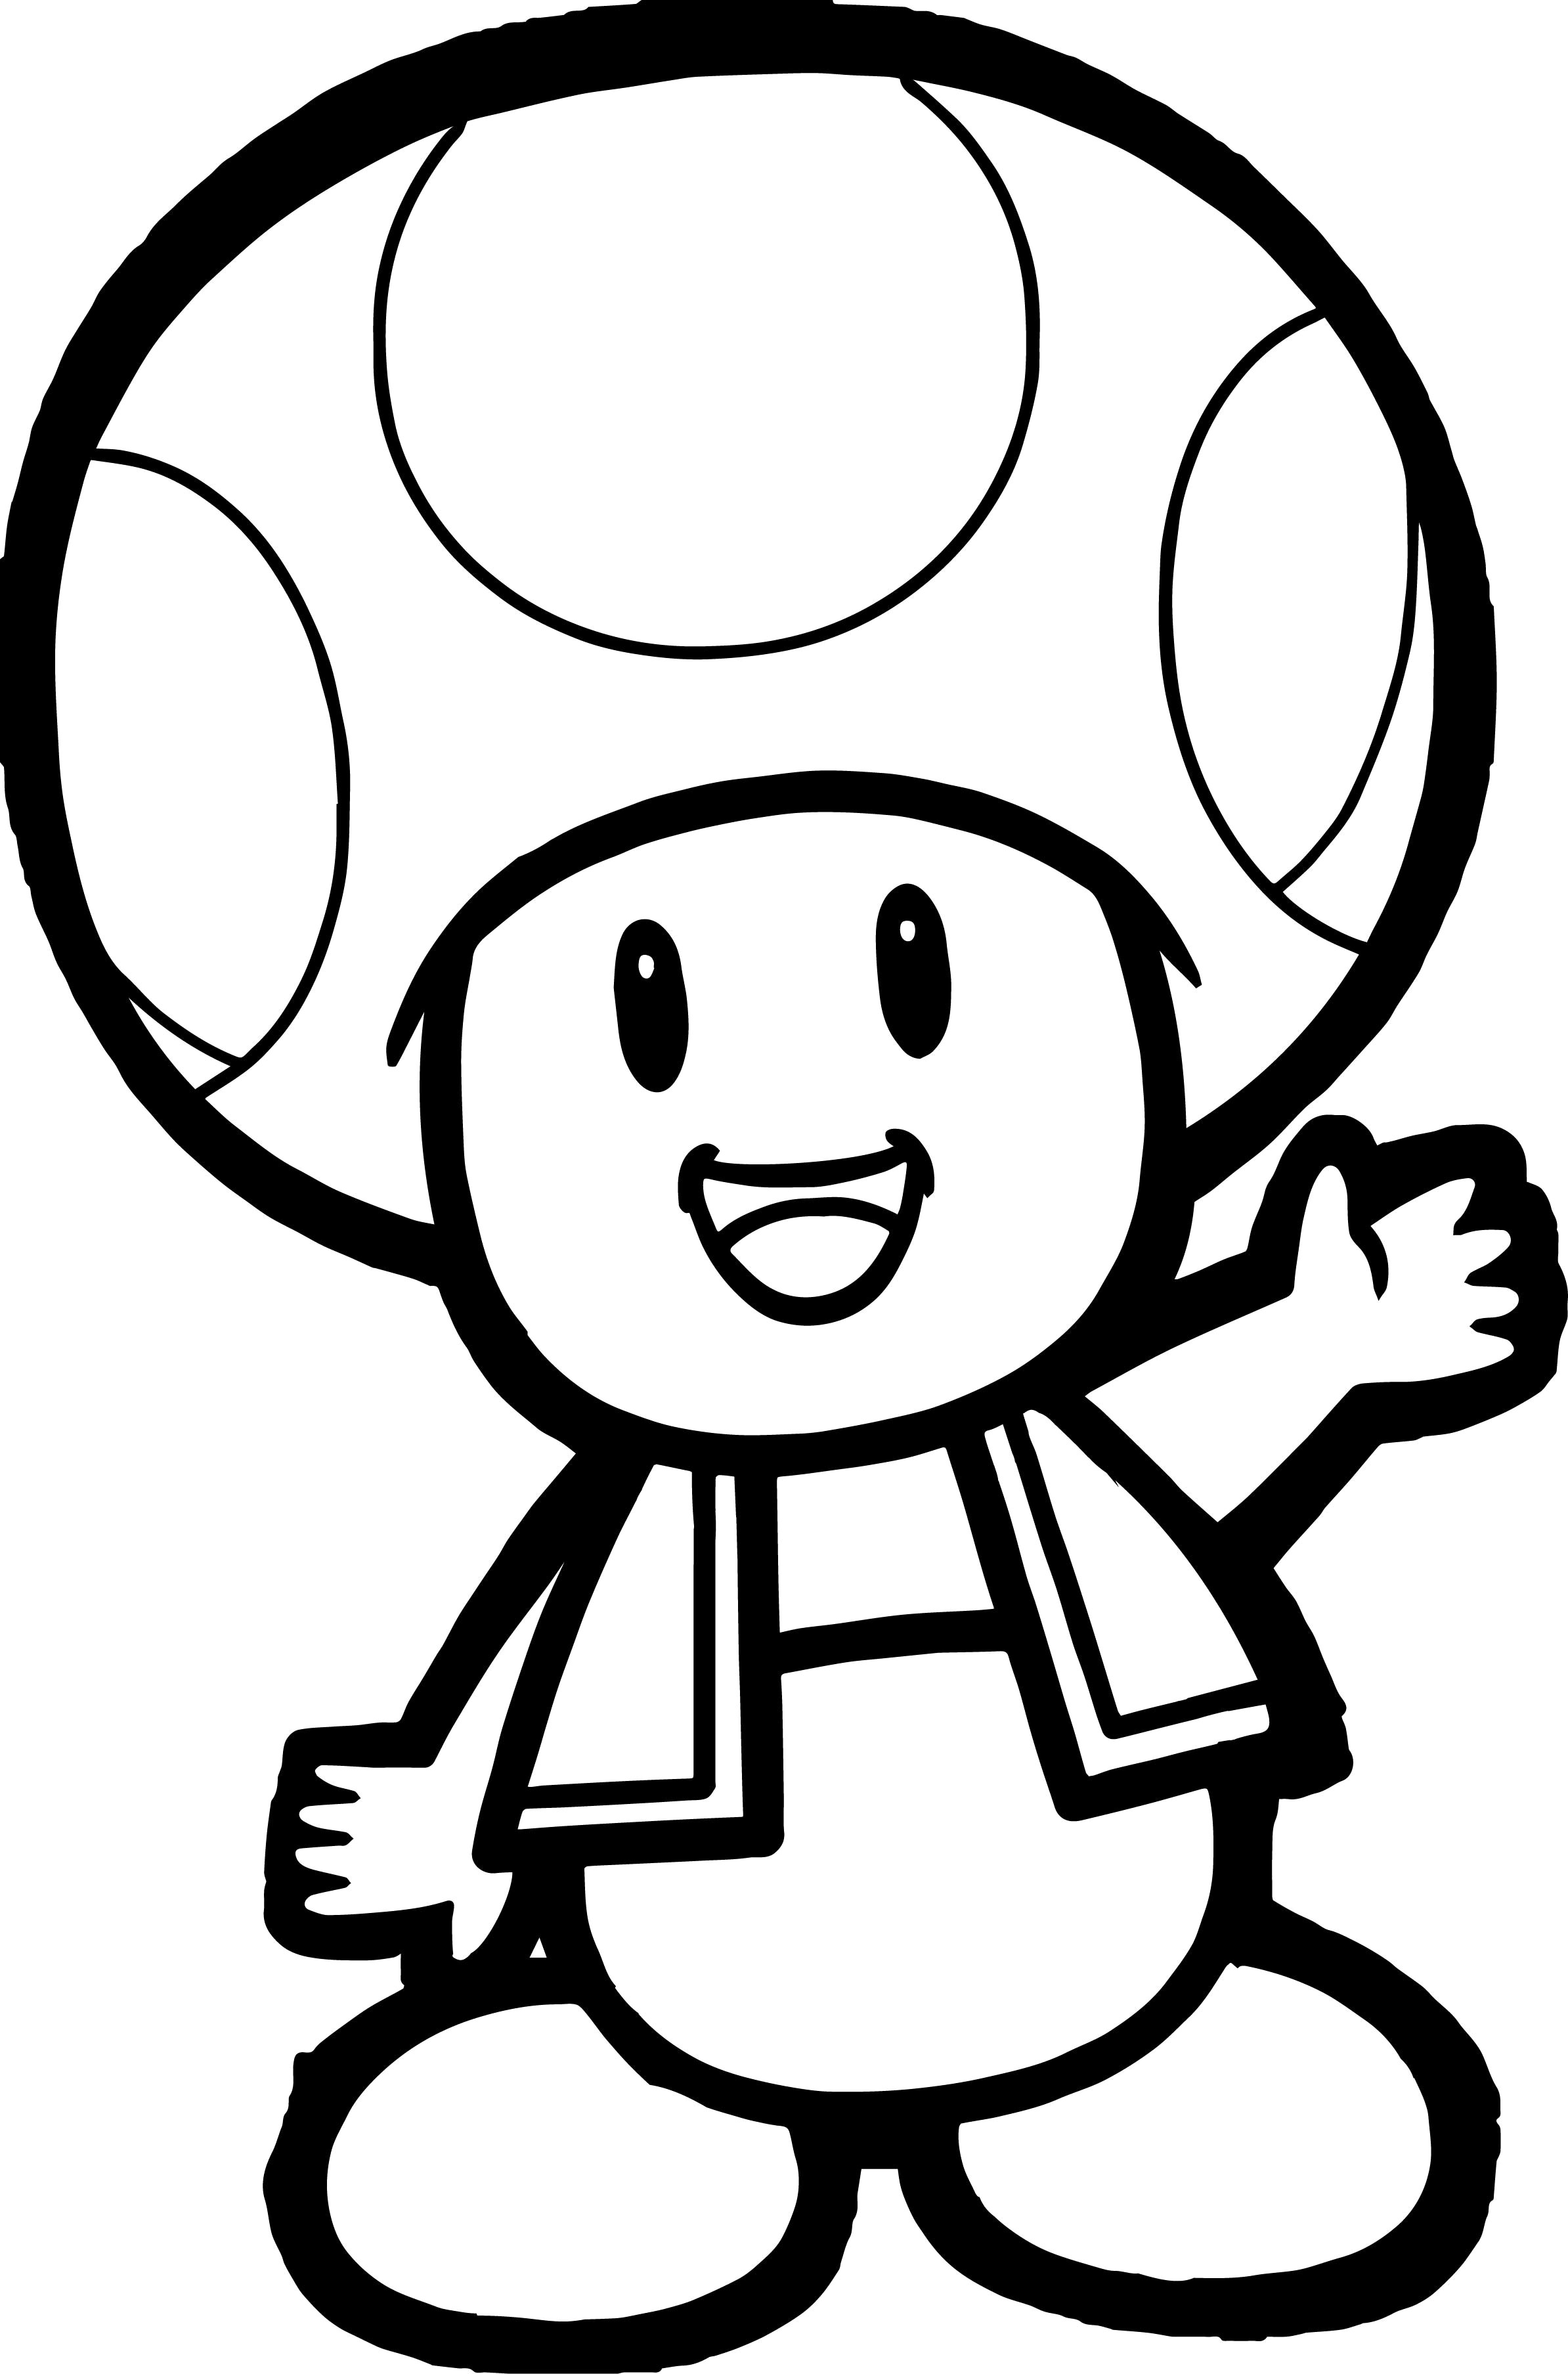 Toad And Toadette Coloring Pages Toad And Toadette Coloring Pages Mario My Localdea Of Telematik